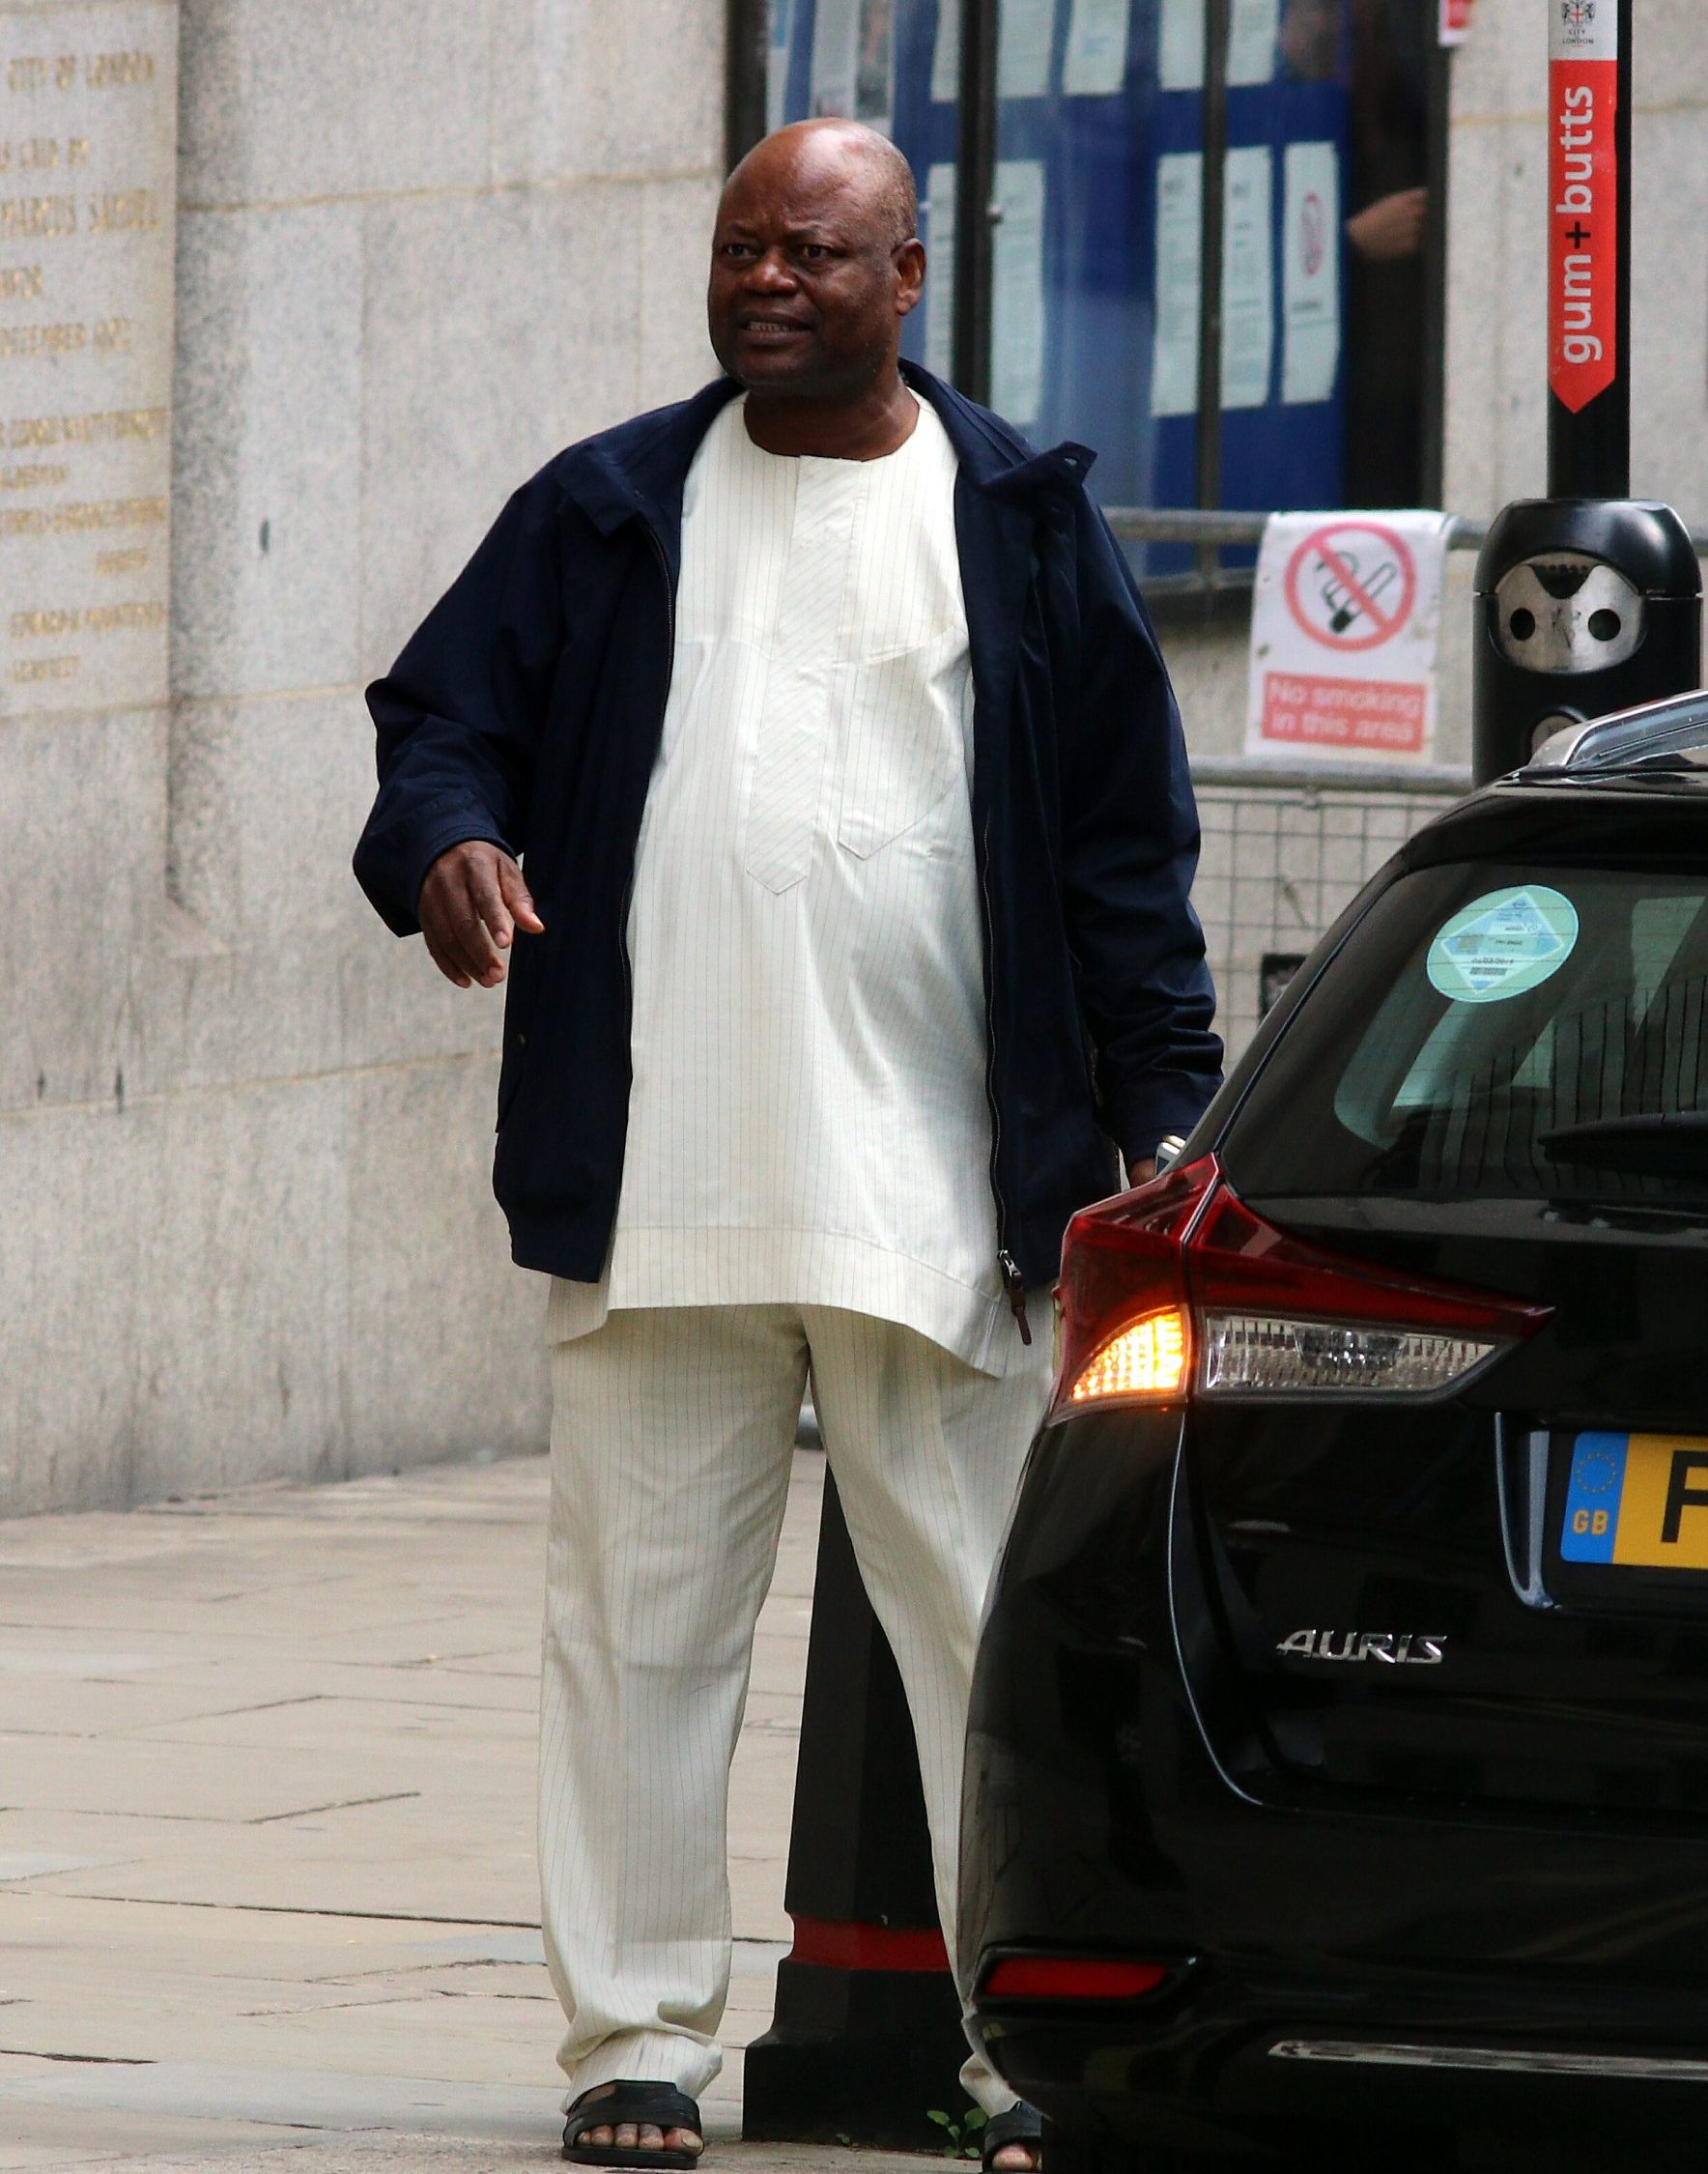 Pic shows Kenneth Ife, at the Old Bailey The parents and five brothers of a marketing consultant who died in a botched exorcism have are in court charged with killing him. Kennedy Ife, 26, died after suffering a cardiac arrest at the family home in Hadley Wood, Barnet, on 22 October 2016. His father Kenneth, 63, mother Josephine, 55, and brothers Roy, 32, Harry, 31, Colin, 27, and 20-year old twins Daniel and Samuel are due to stand trial at the Old Bailey today SEE STORY CENTRAL NEWS